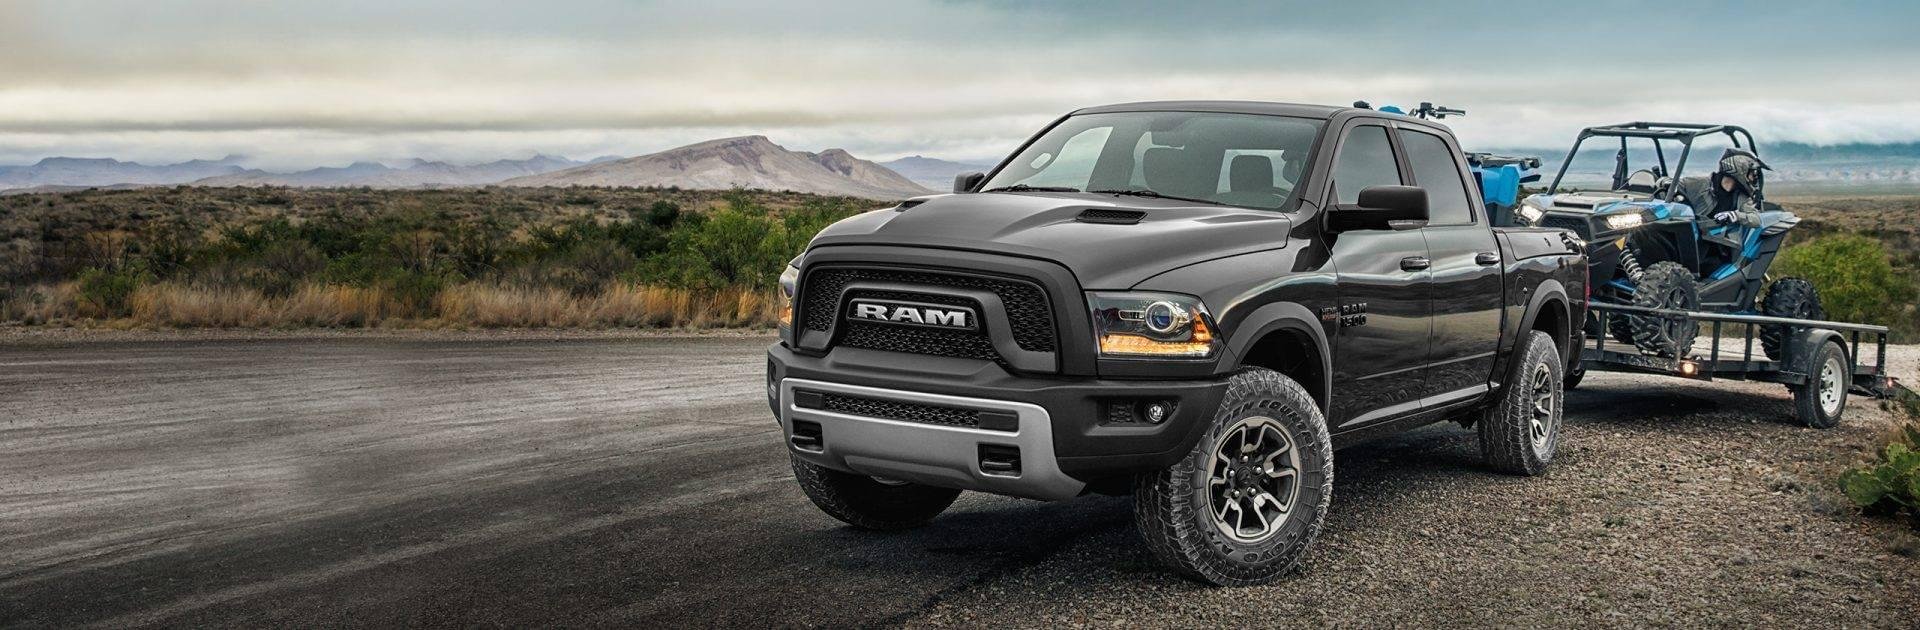 Ram 1500 Towing Capacity >> 5 Things To Know About Your Ram S Towing Capacity Best Cdjr